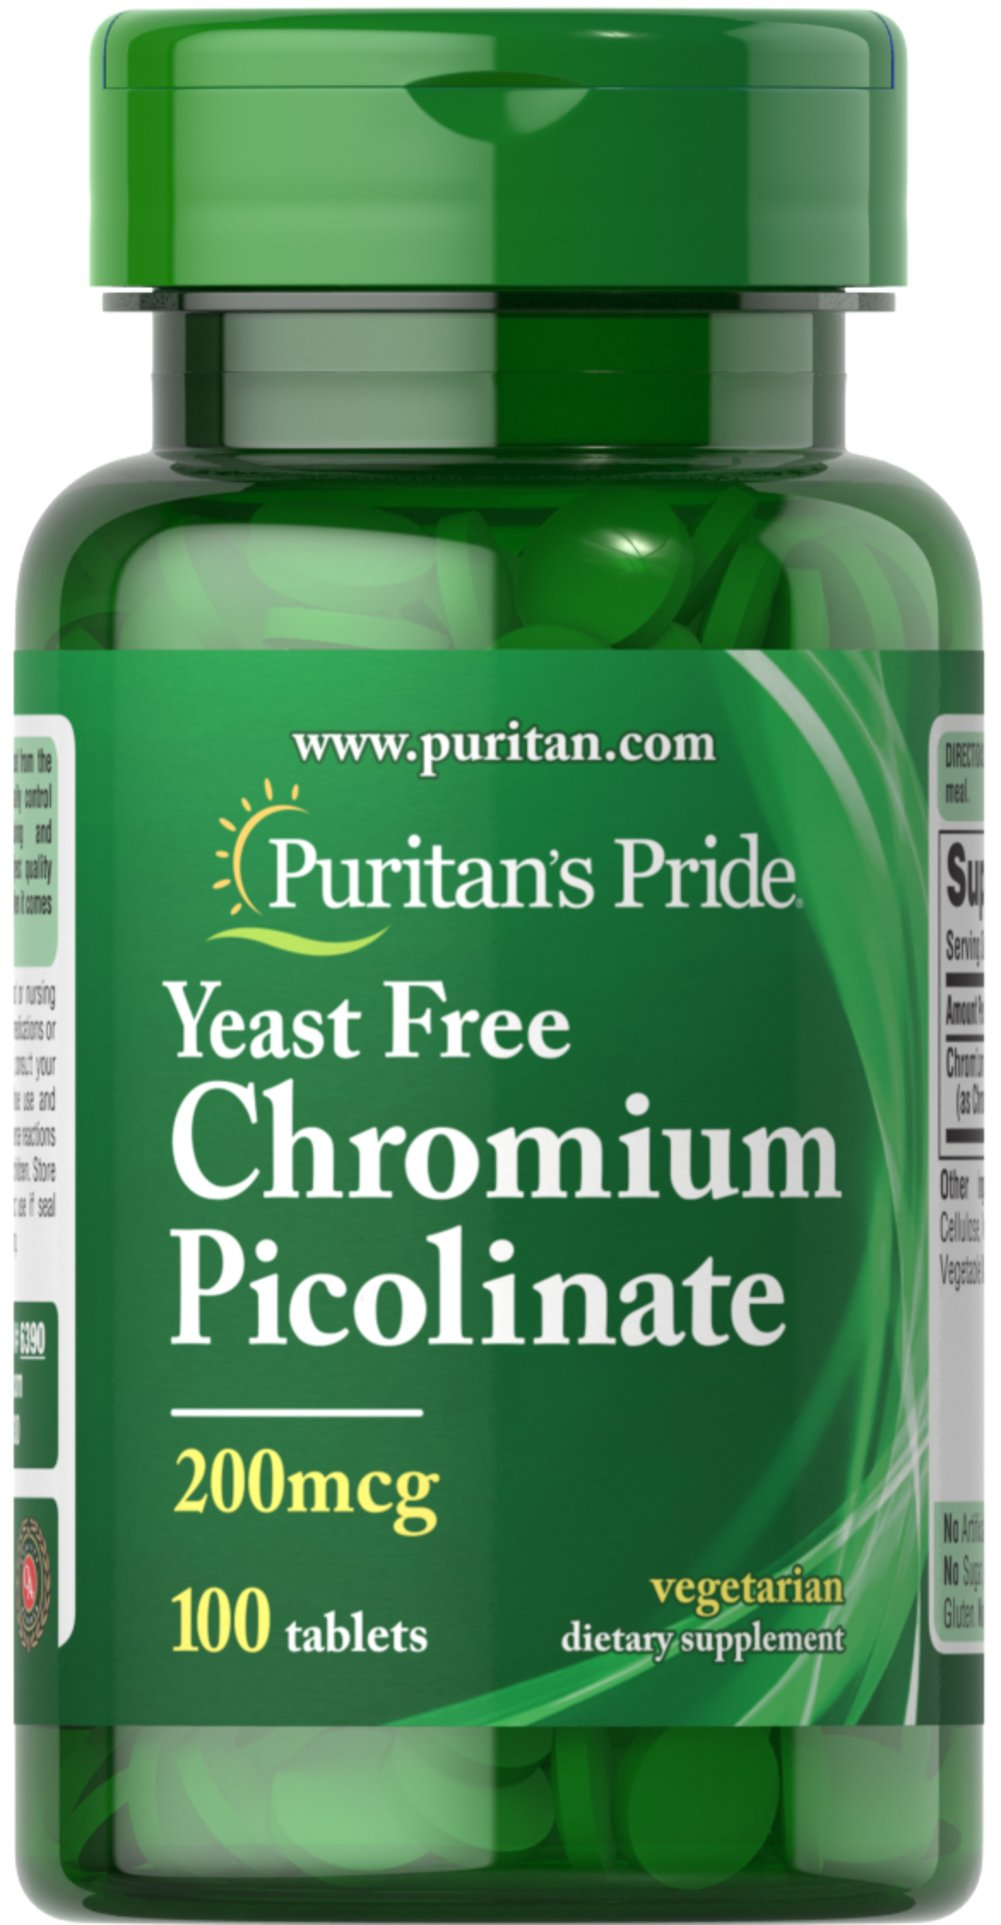 Chromium Picolinate 200 mcg Yeast Free Thumbnail Alternate Bottle View